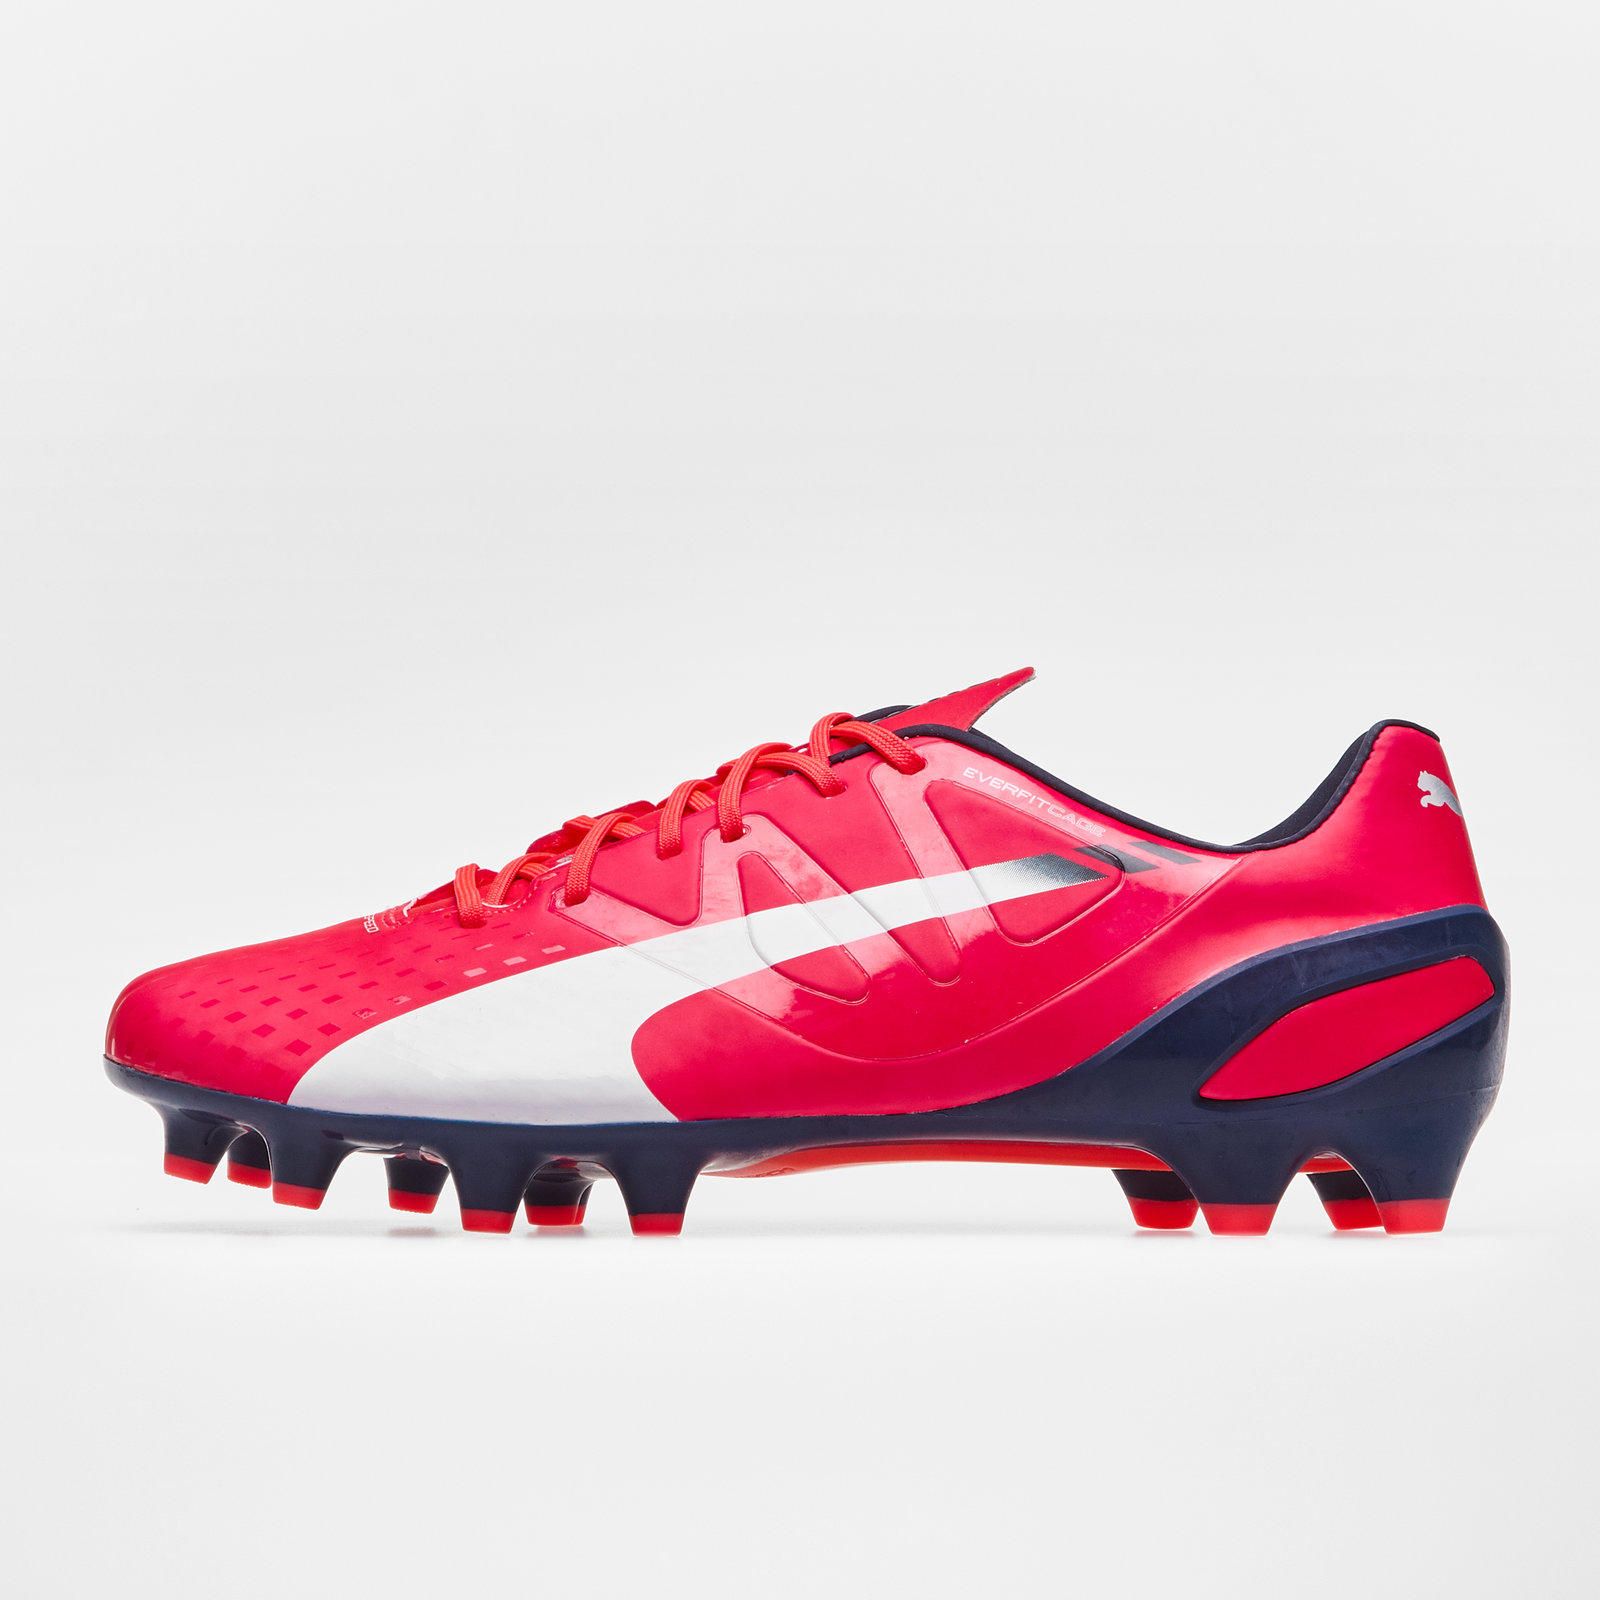 pretty nice 93329 50aa7 Details about Puma Mens evoSPEED 1.3 FG Football Boots Sports Shoes Studs  Red